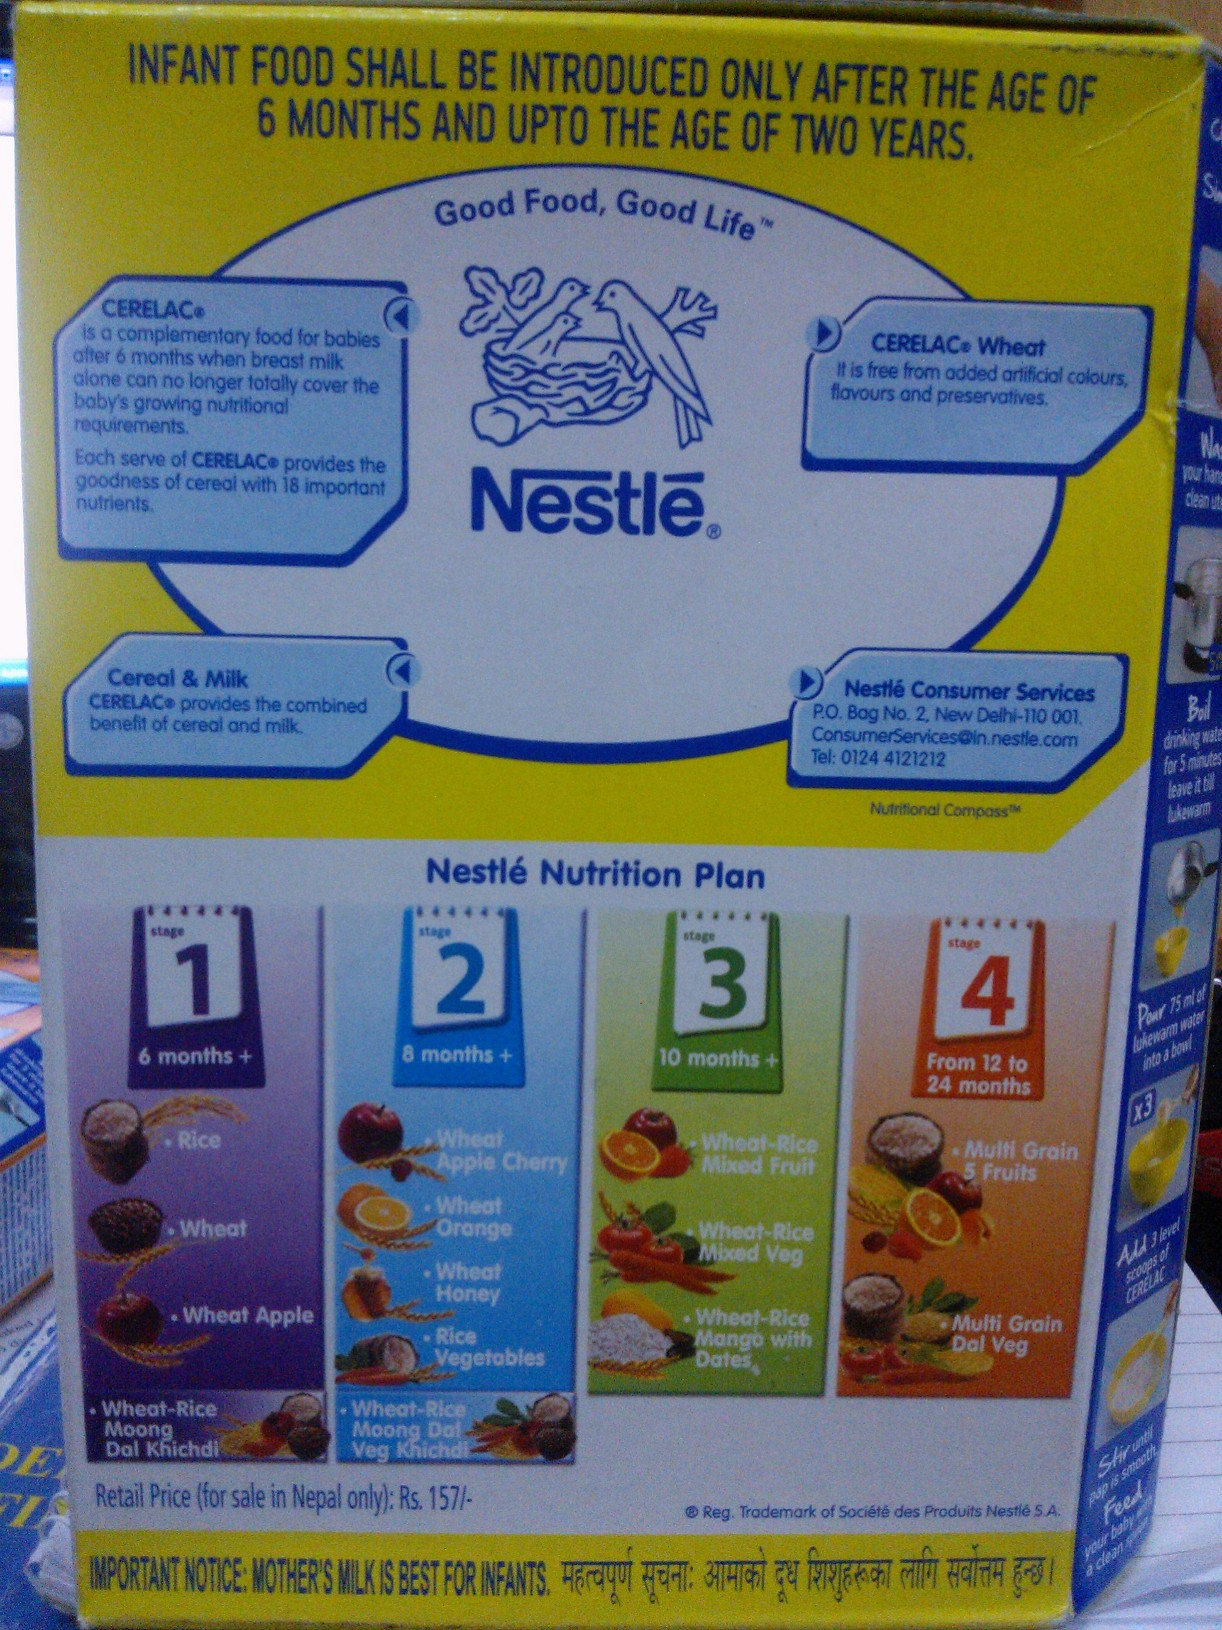 breastfeeding promotion network of picture 2 nan pro 1 infant milk substitute